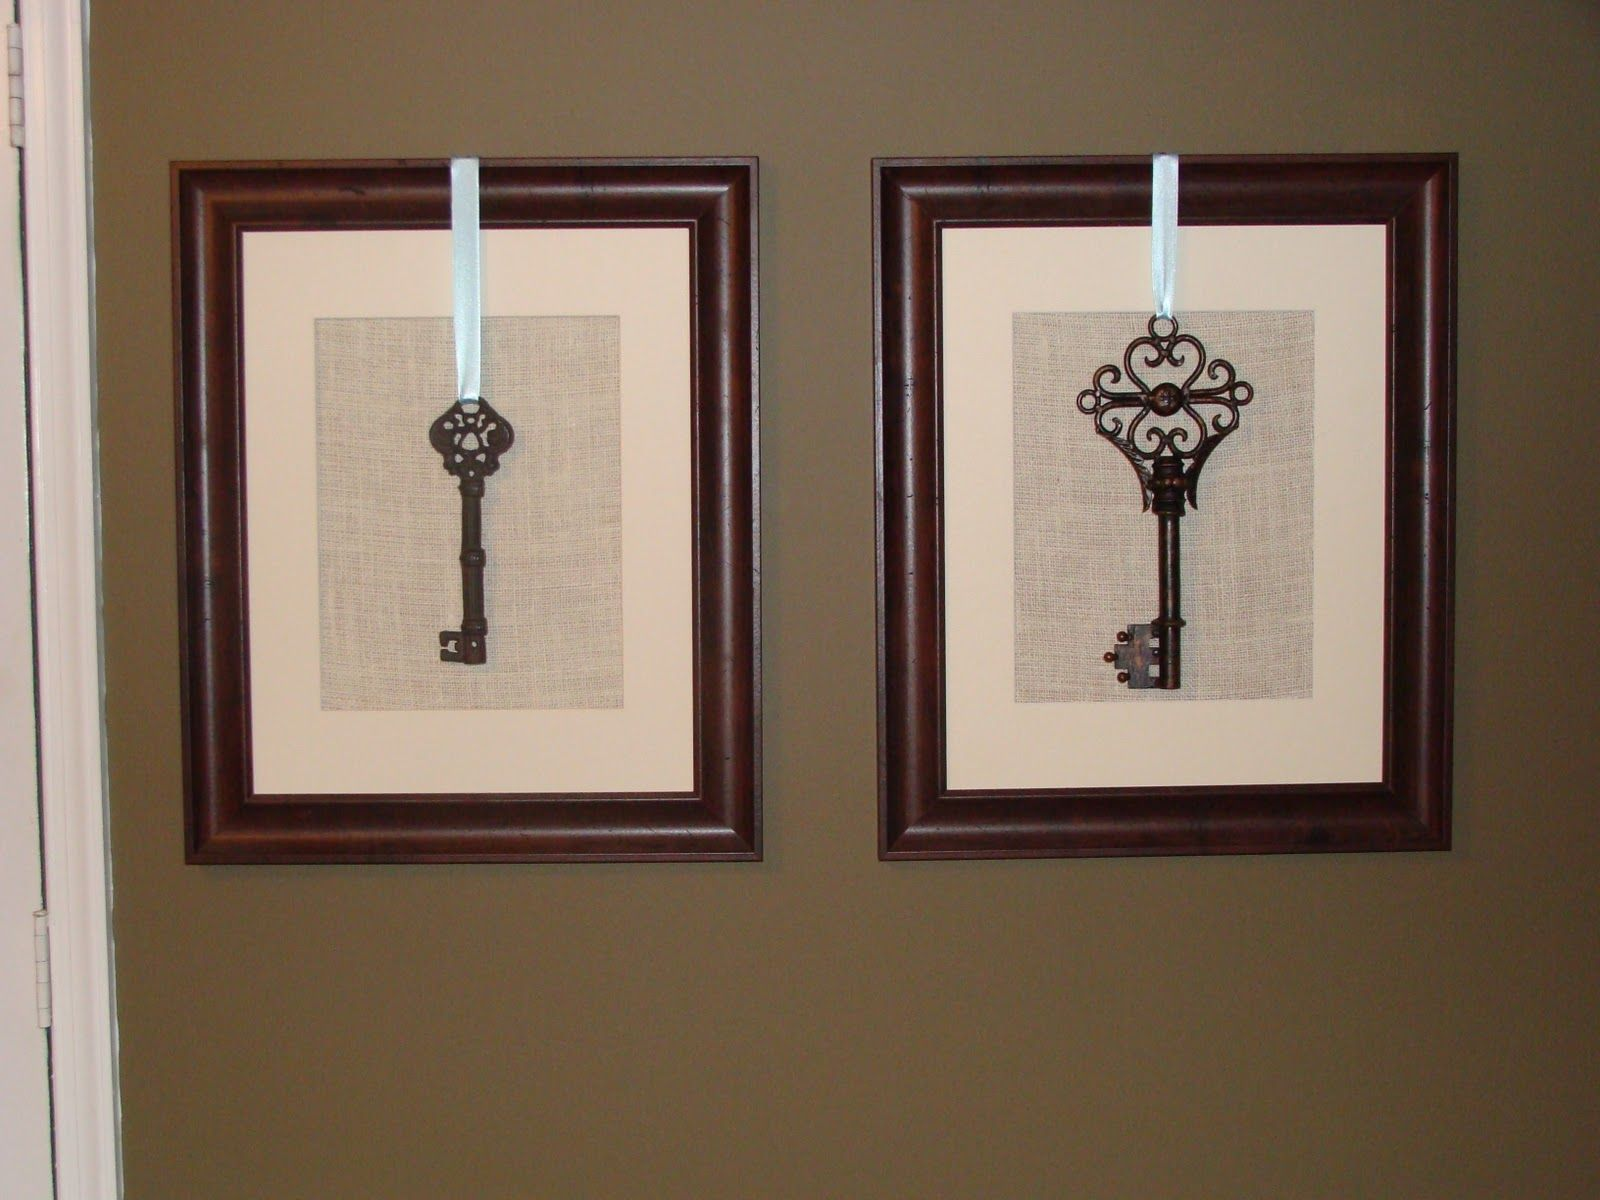 Cool And Easy Wall Art Frames And Skeleton Keys